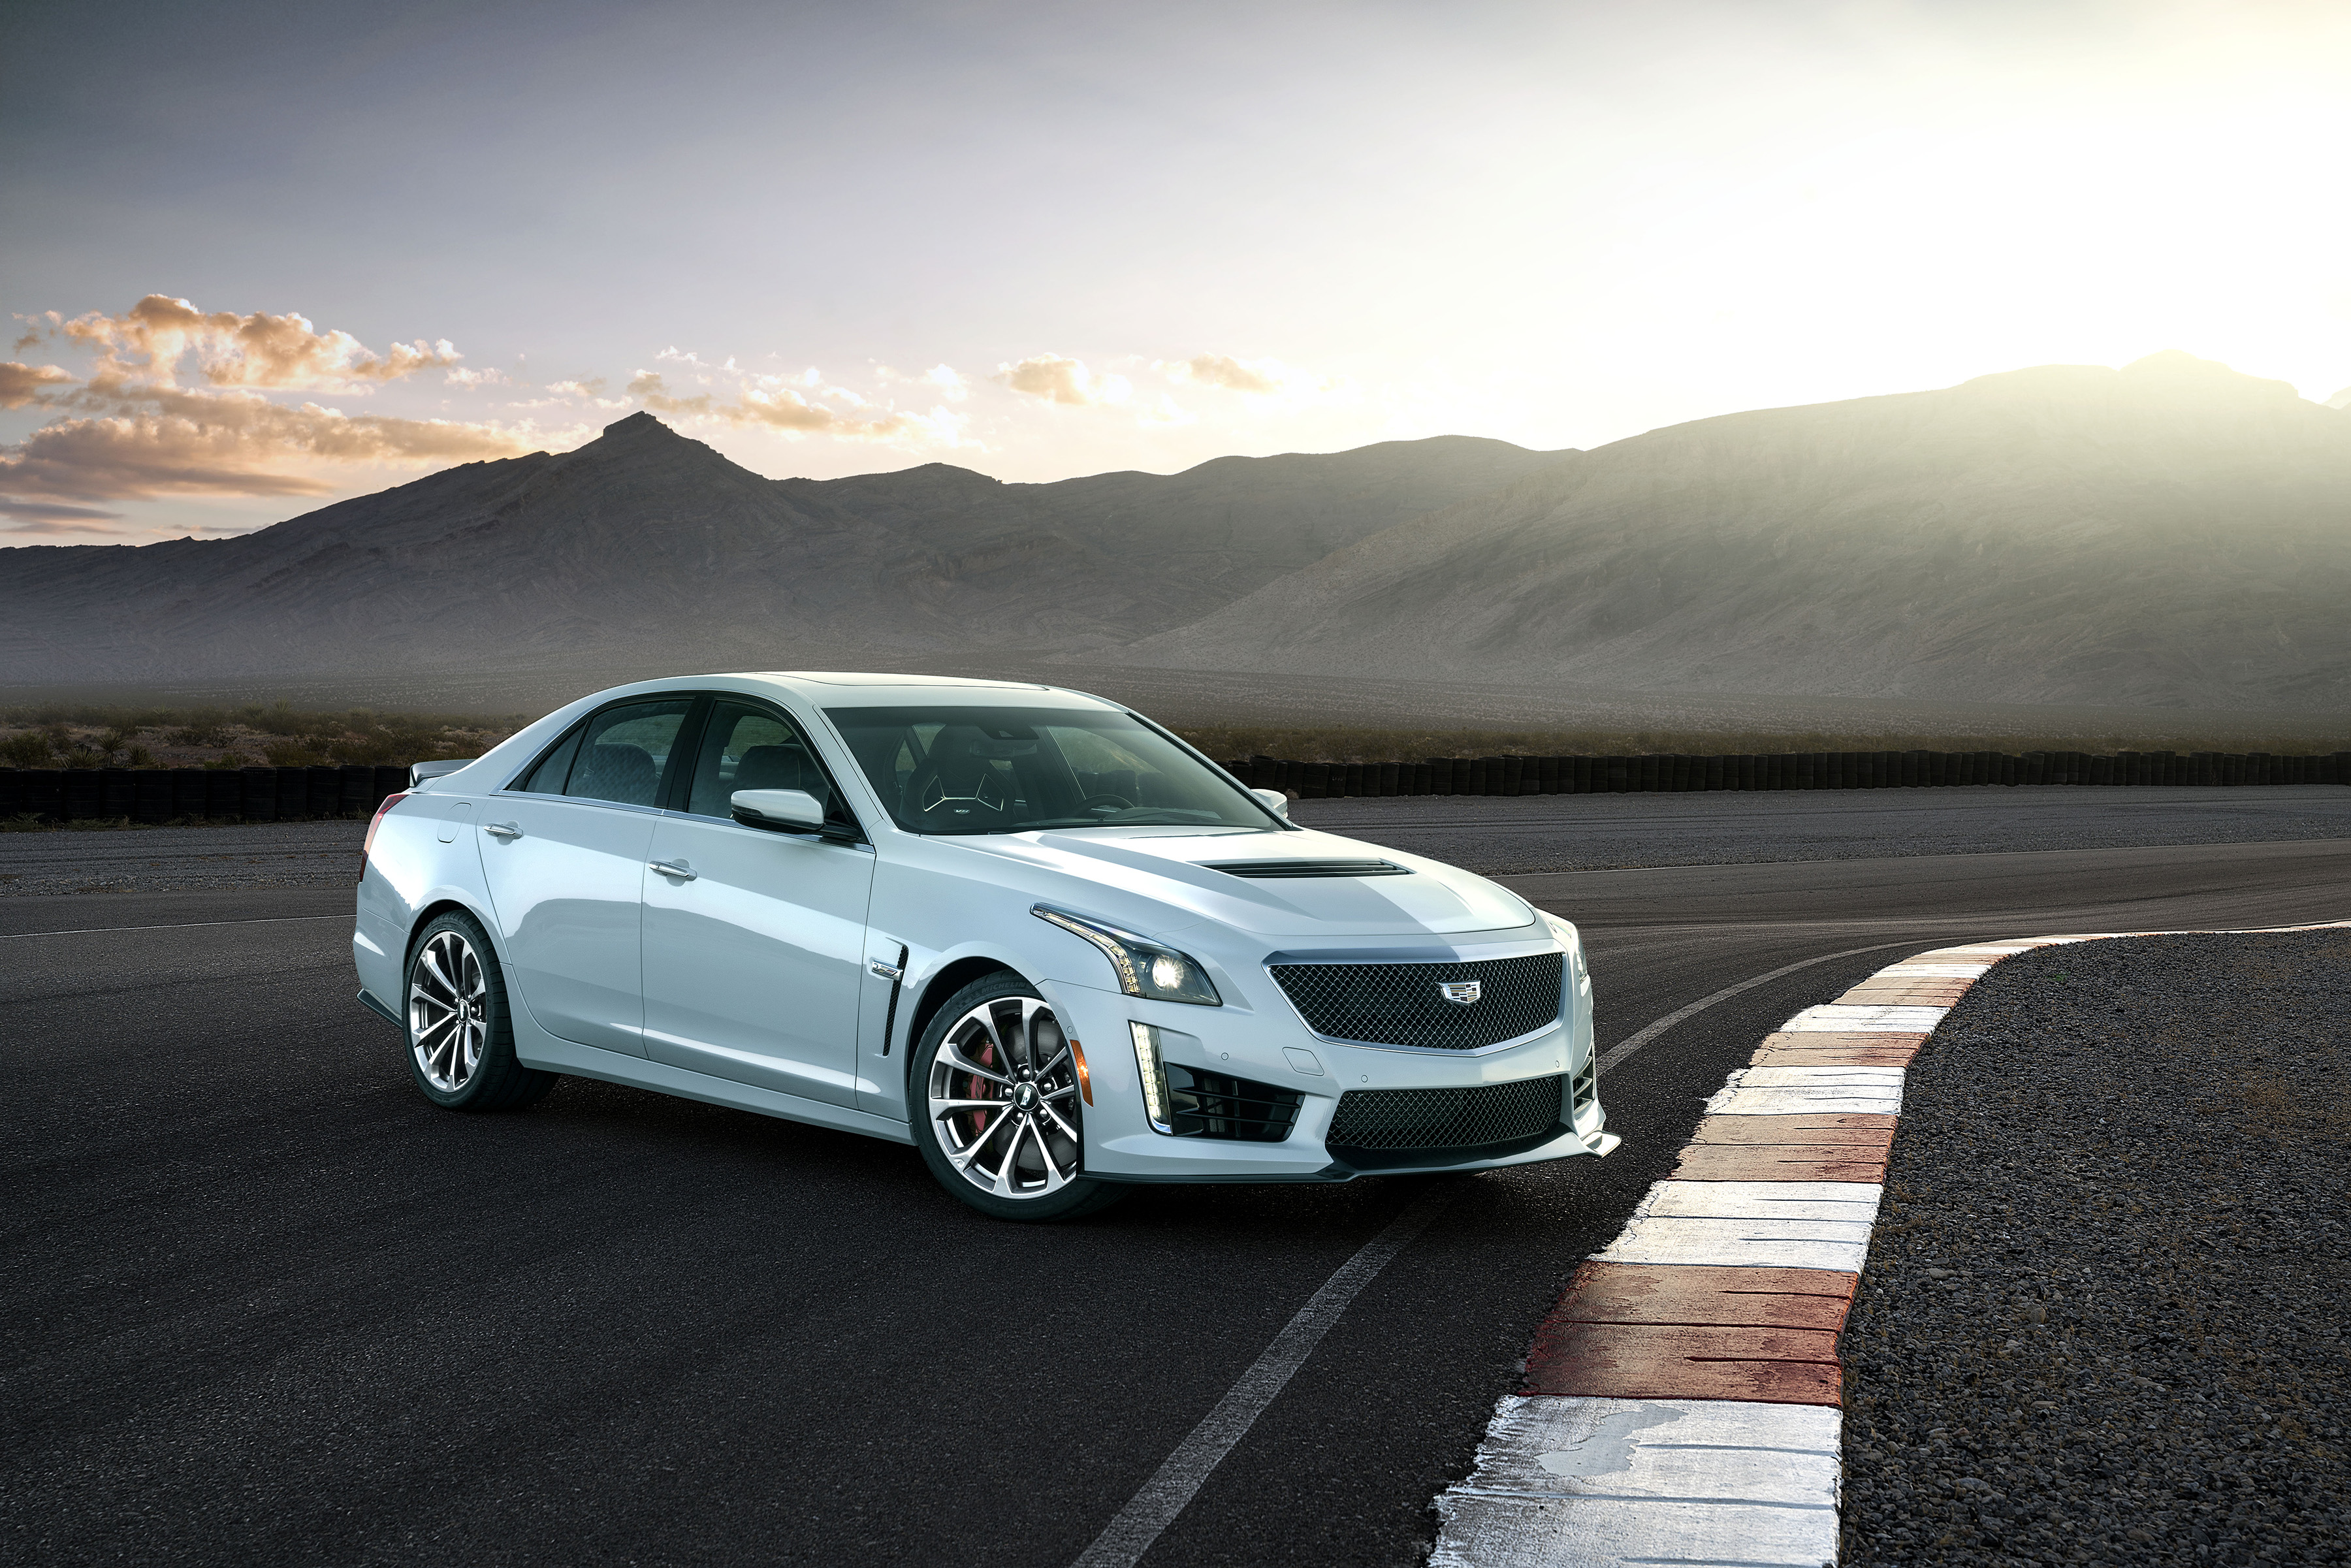 New Cadillac Alpha Cars Coming Soon Gm Inside News